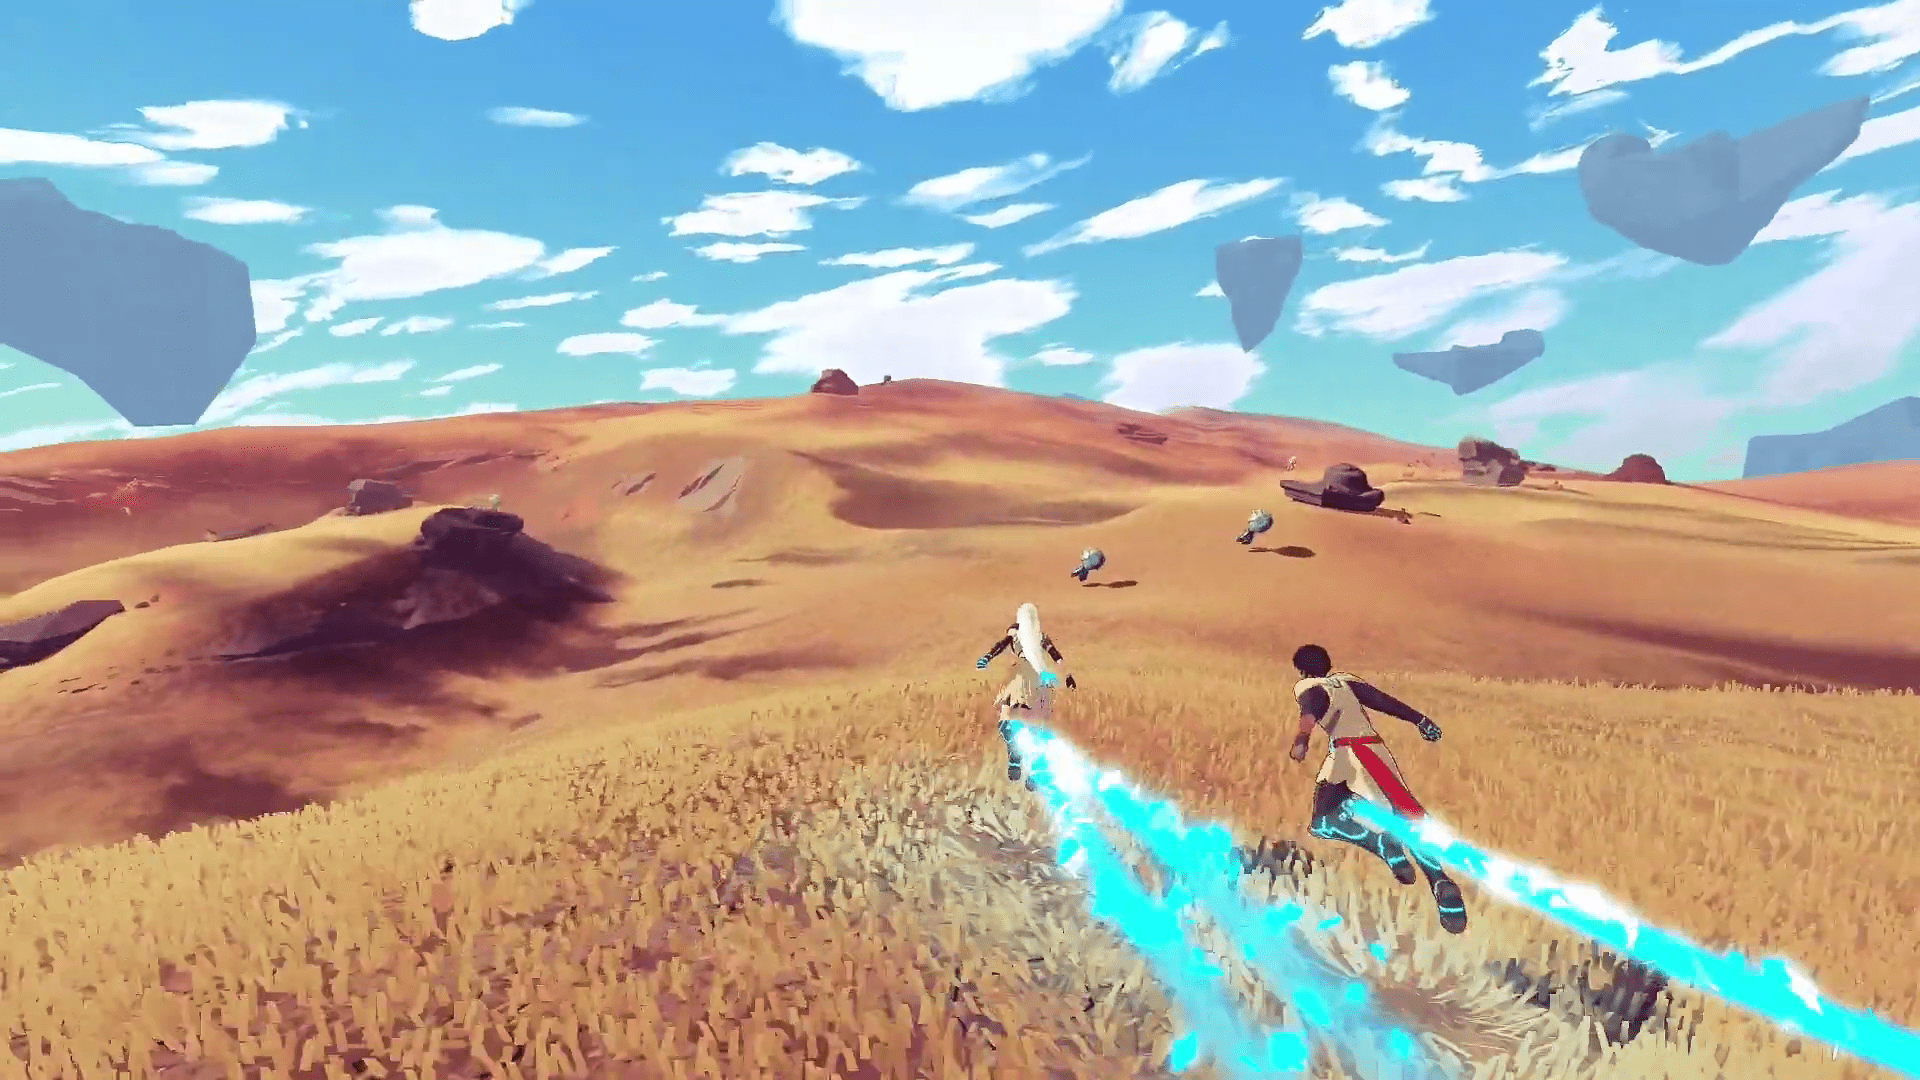 Haven, New Game From The Developer's Of Furi, Looks Like It Crosses Journey With Synth-Pop And JRPG Combat